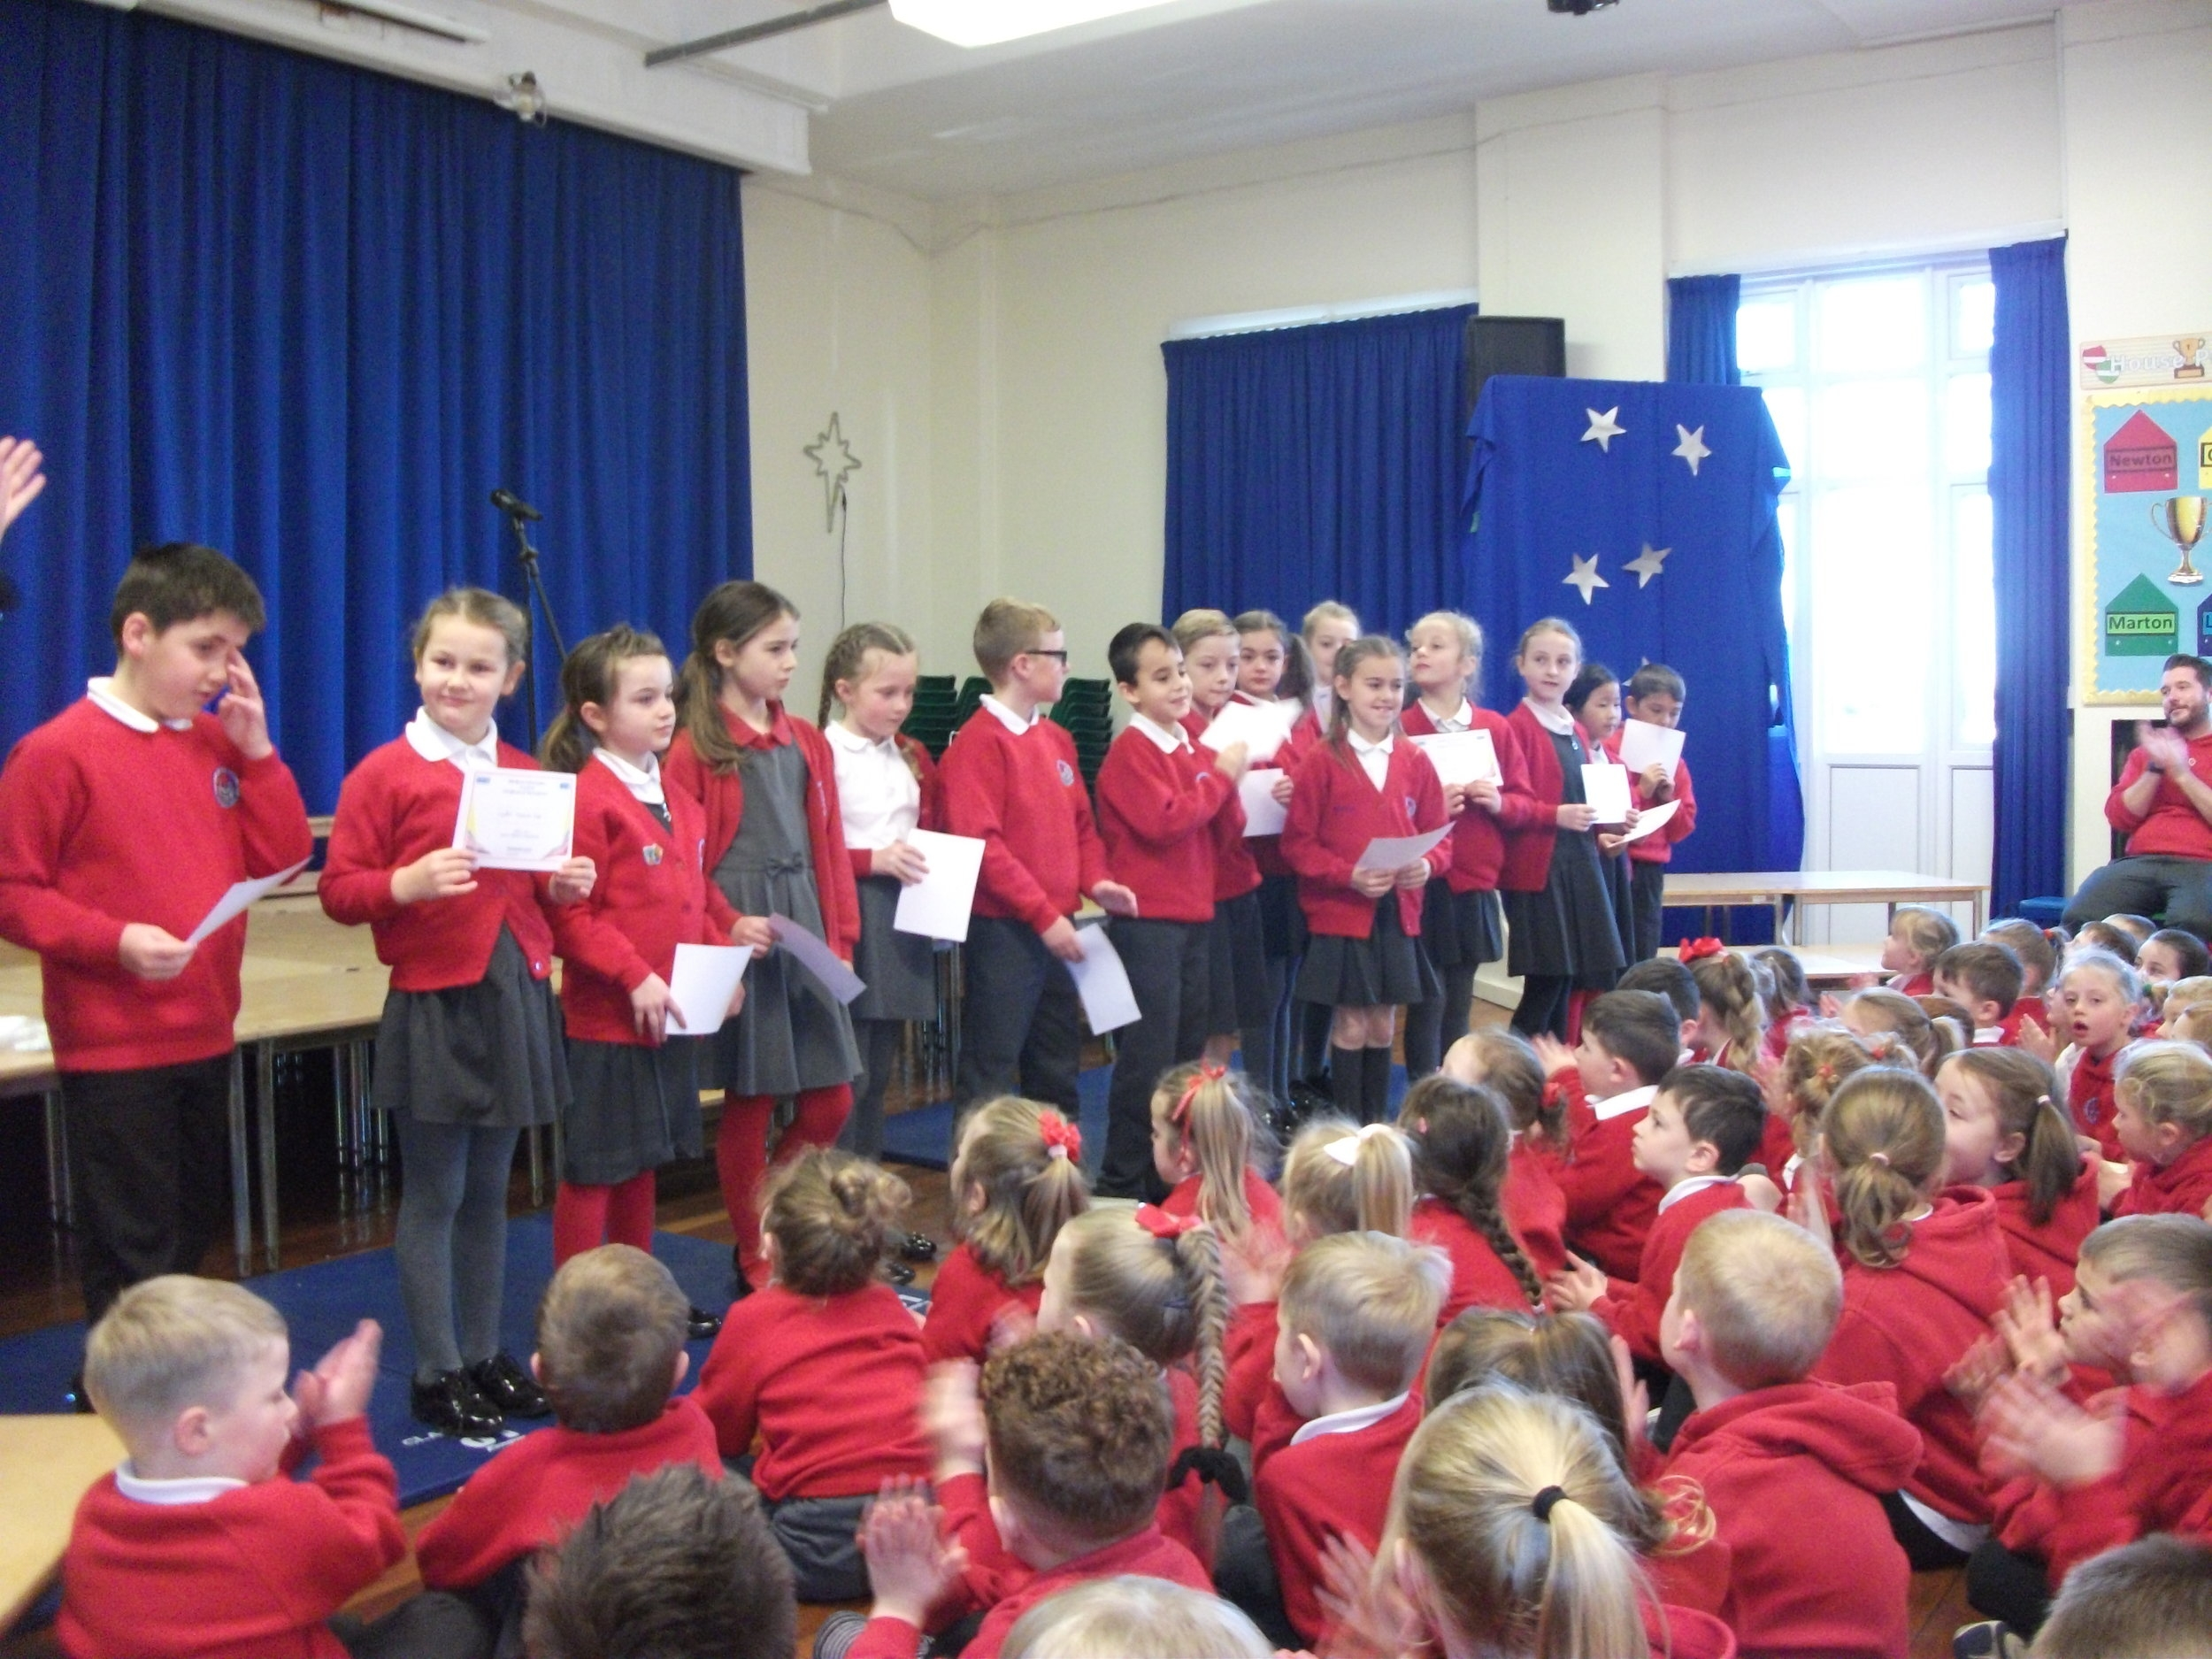 Year 3 & Year 4 Athletics Team in assembly